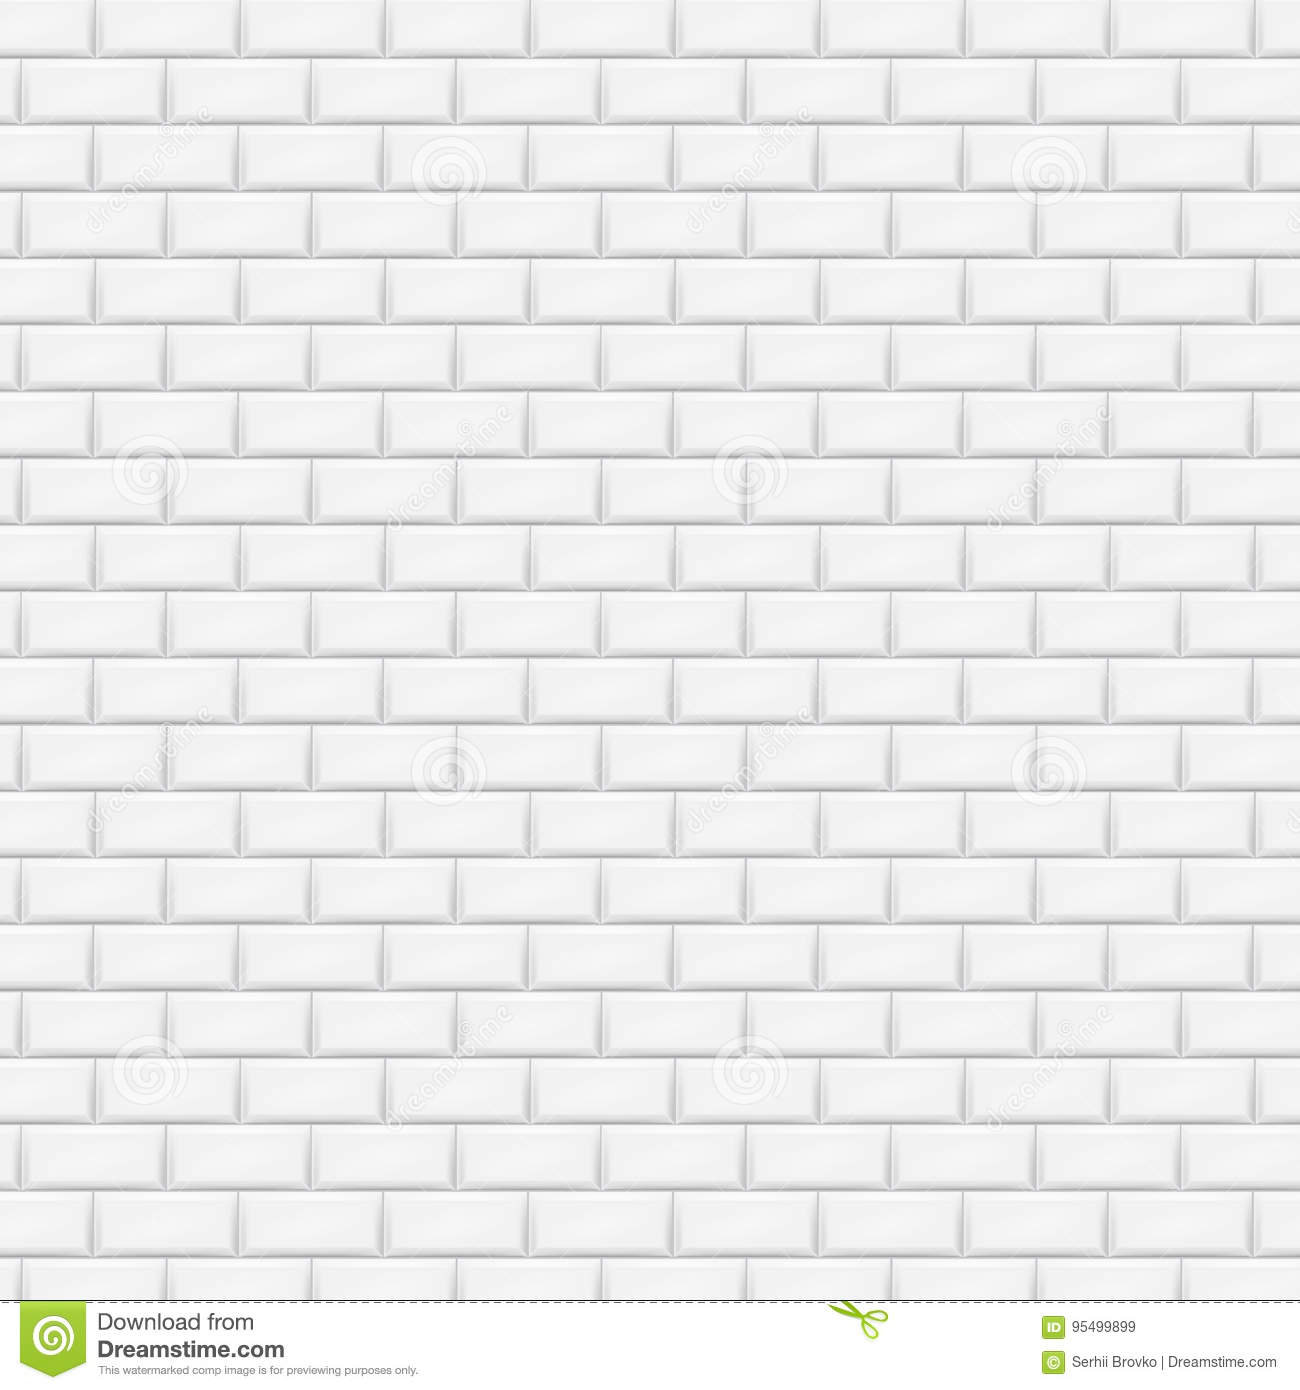 Designer White Abstract Ceramic Wall Tile Pack Of 8 L: White Brick Wall In Subway Tile Pattern. Vector